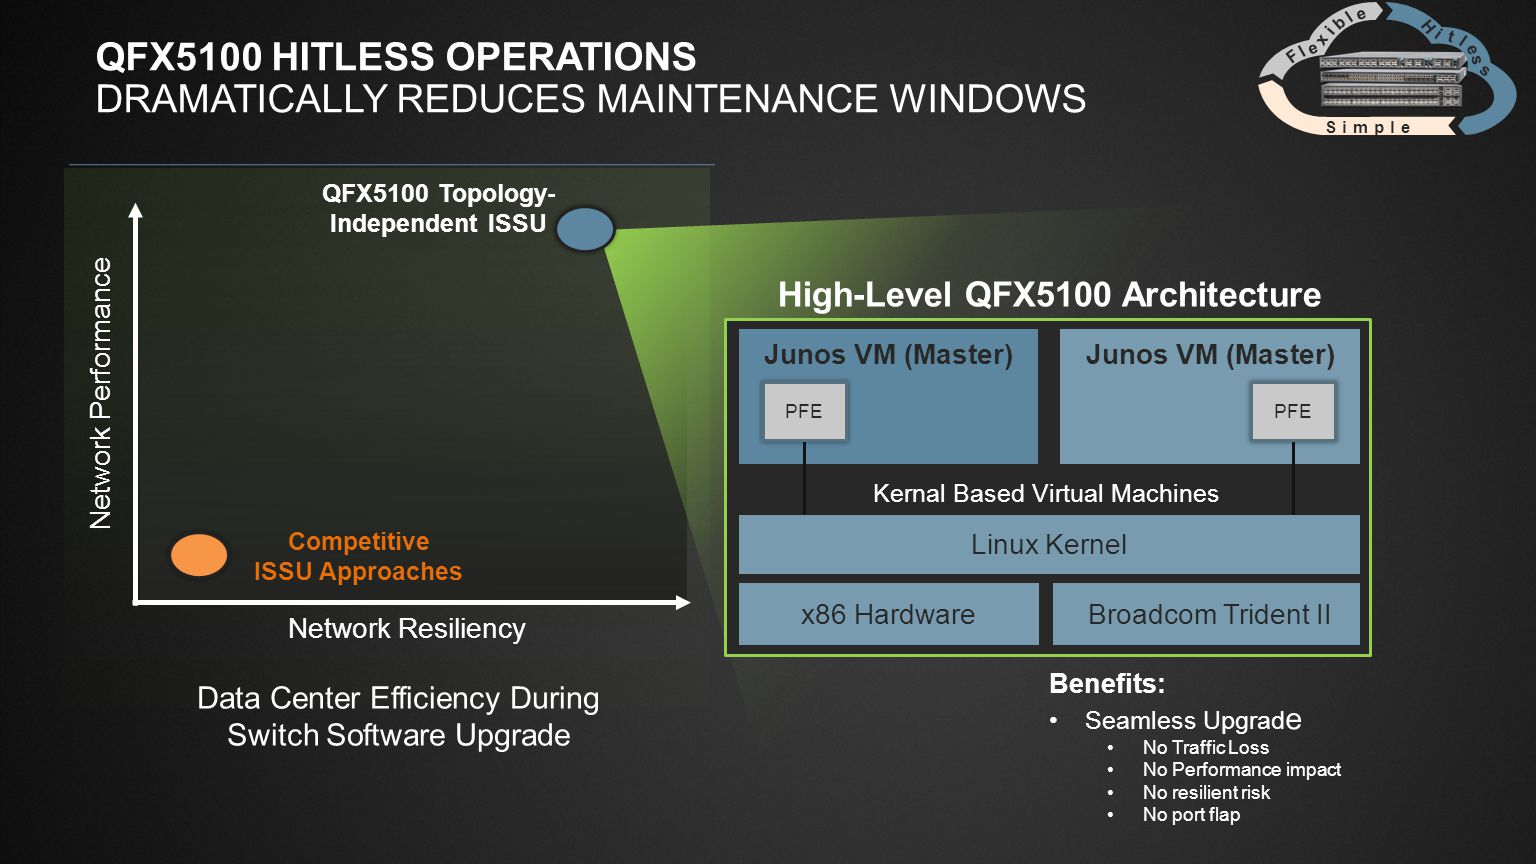 QFX5100 Hitless operations Dramatically Reduces Maintenance Windows